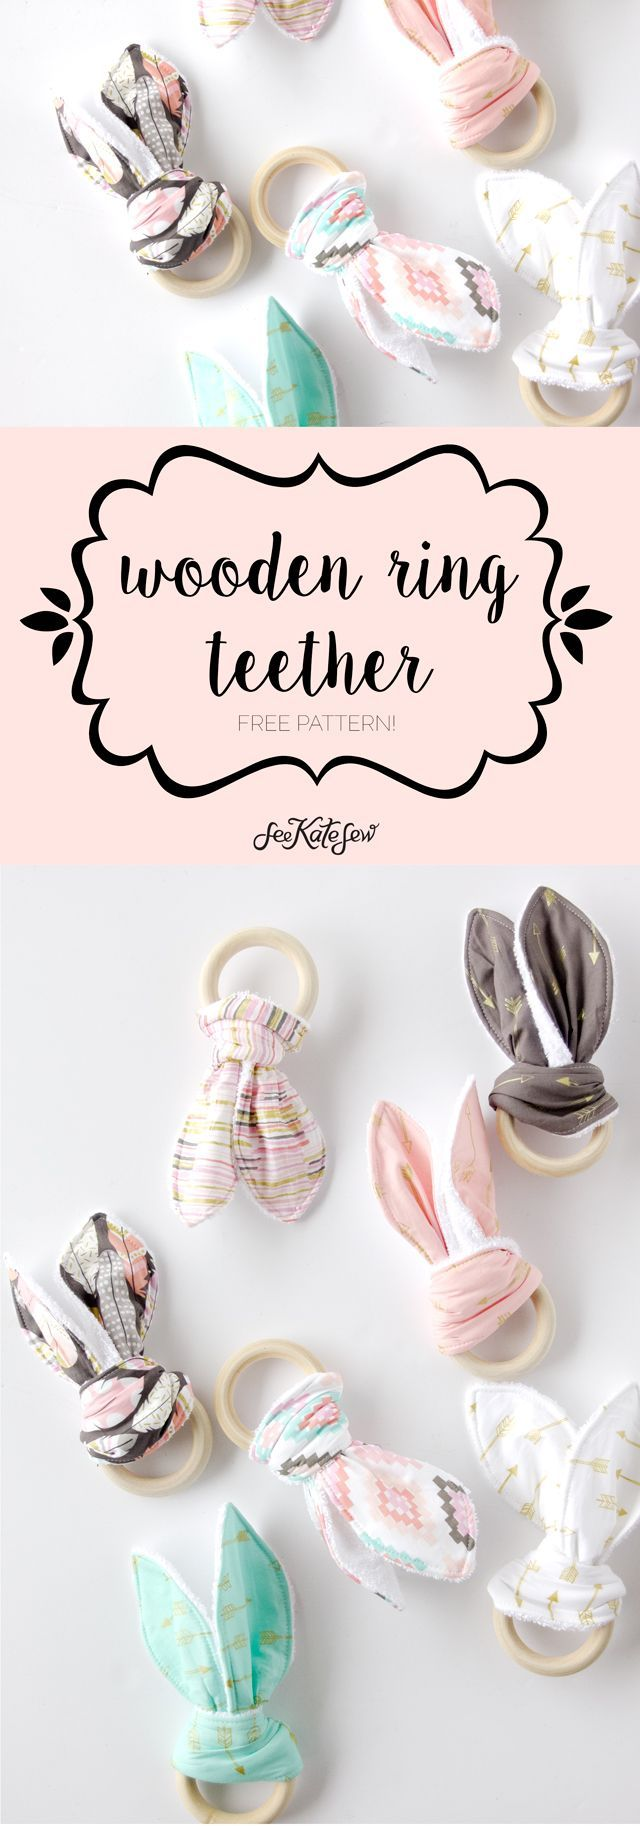 épinglé par ❃❀CM❁✿à partir de sewkatesew. Wooden Ring Teething Toy Tutorial | See Kate Sew